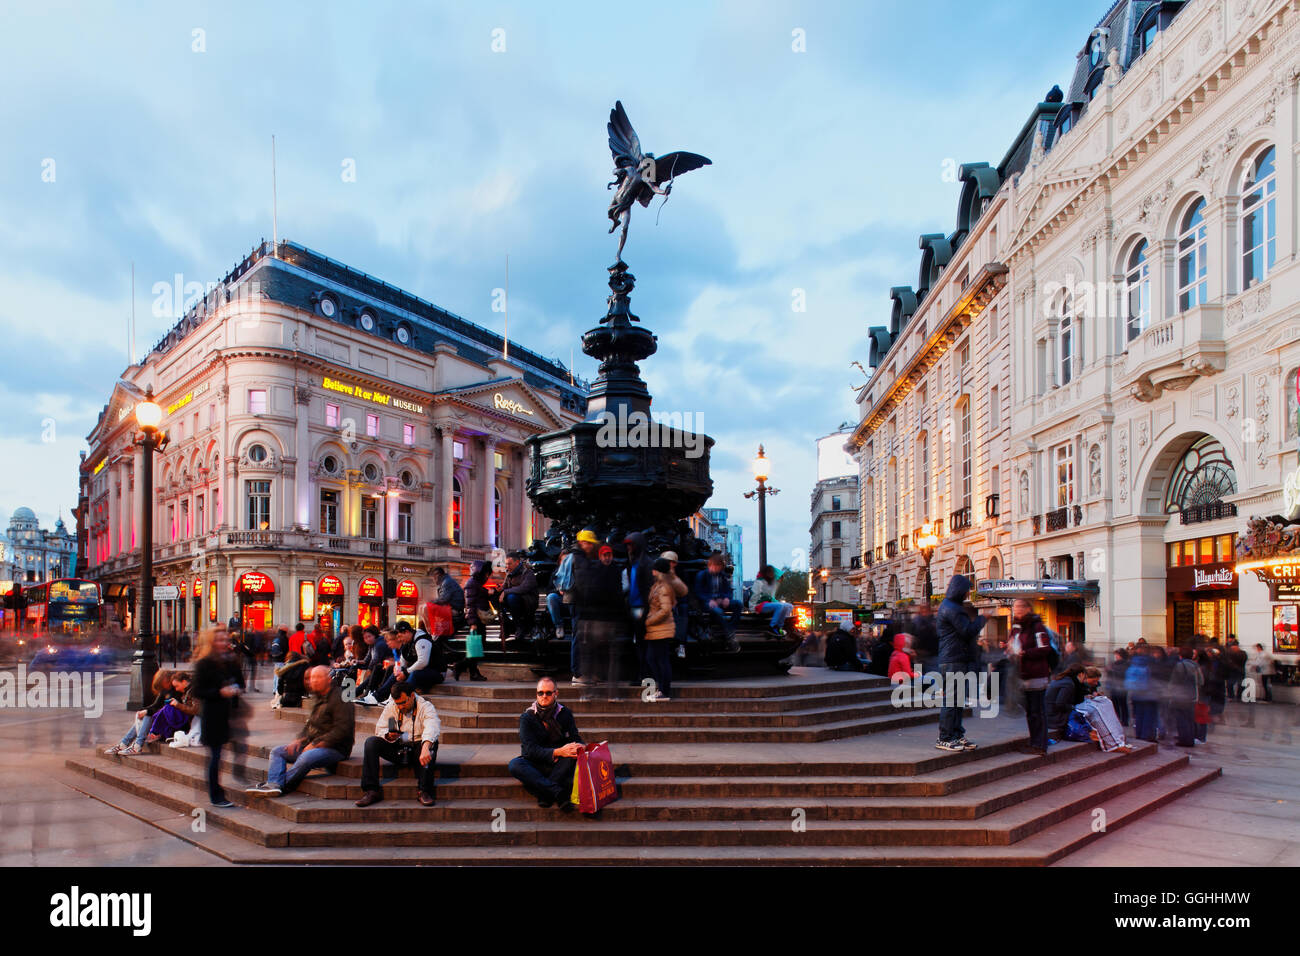 Picadilly Circus and the Eros statue, West End, London, England, United Kingdom - Stock Image